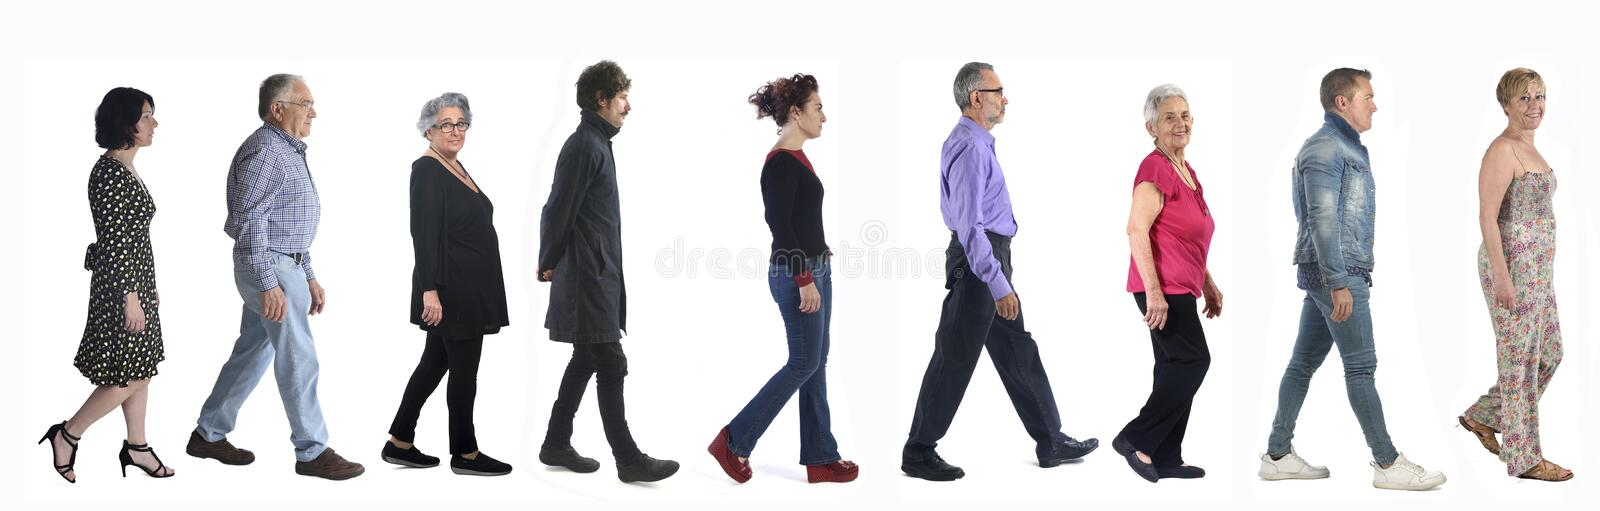 Group of mixed people walking on white stock photos